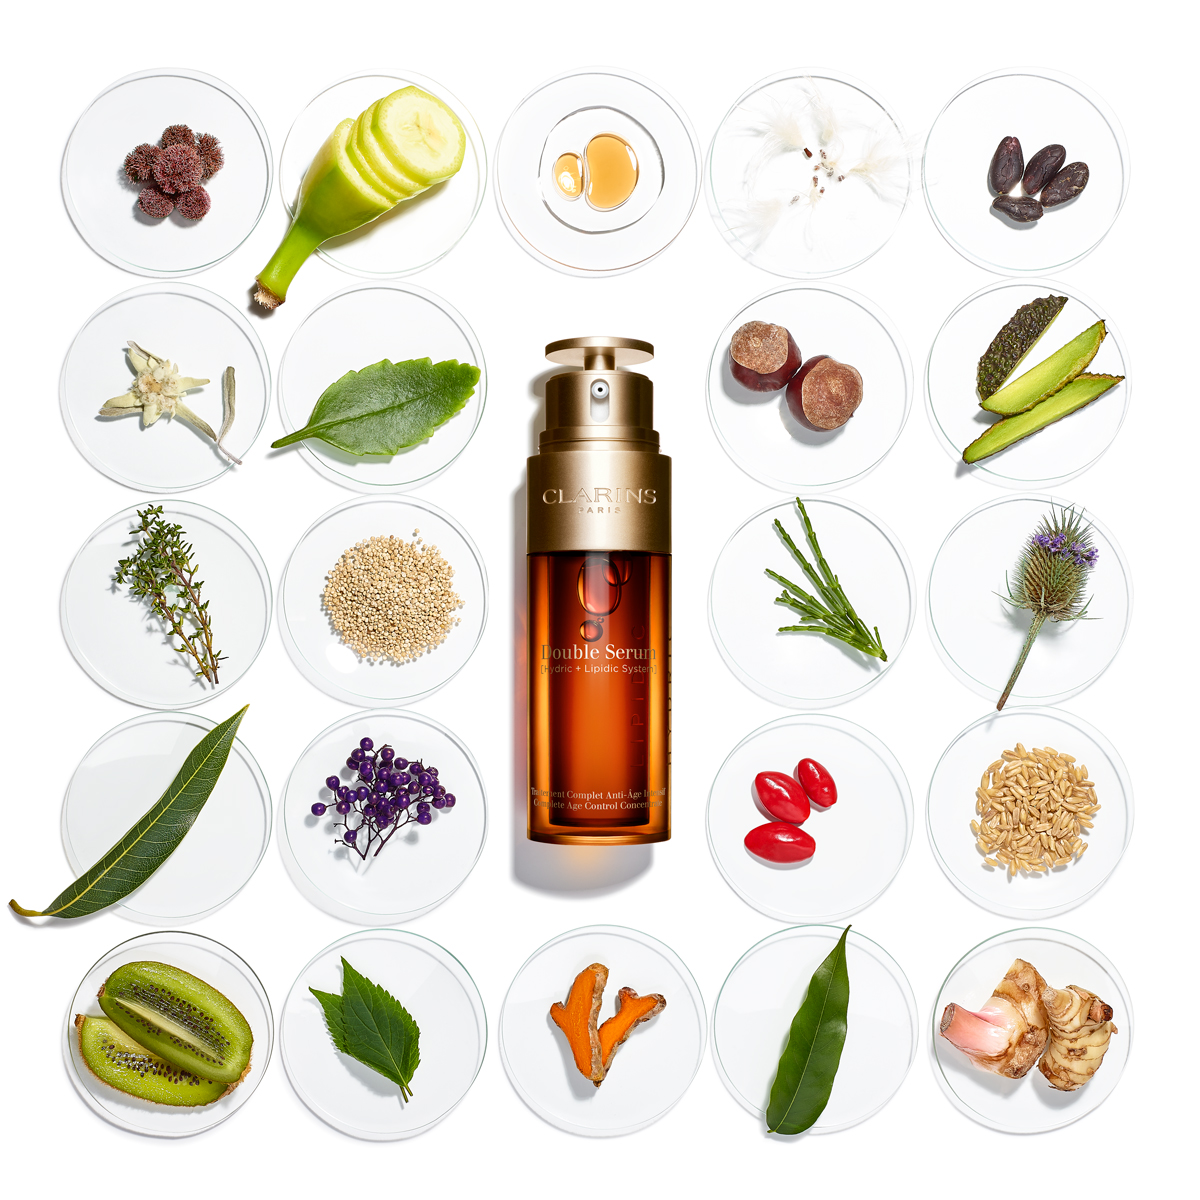 2018_Double_Serum_21_Plants_Top_Down_Glass_cup_social_networks